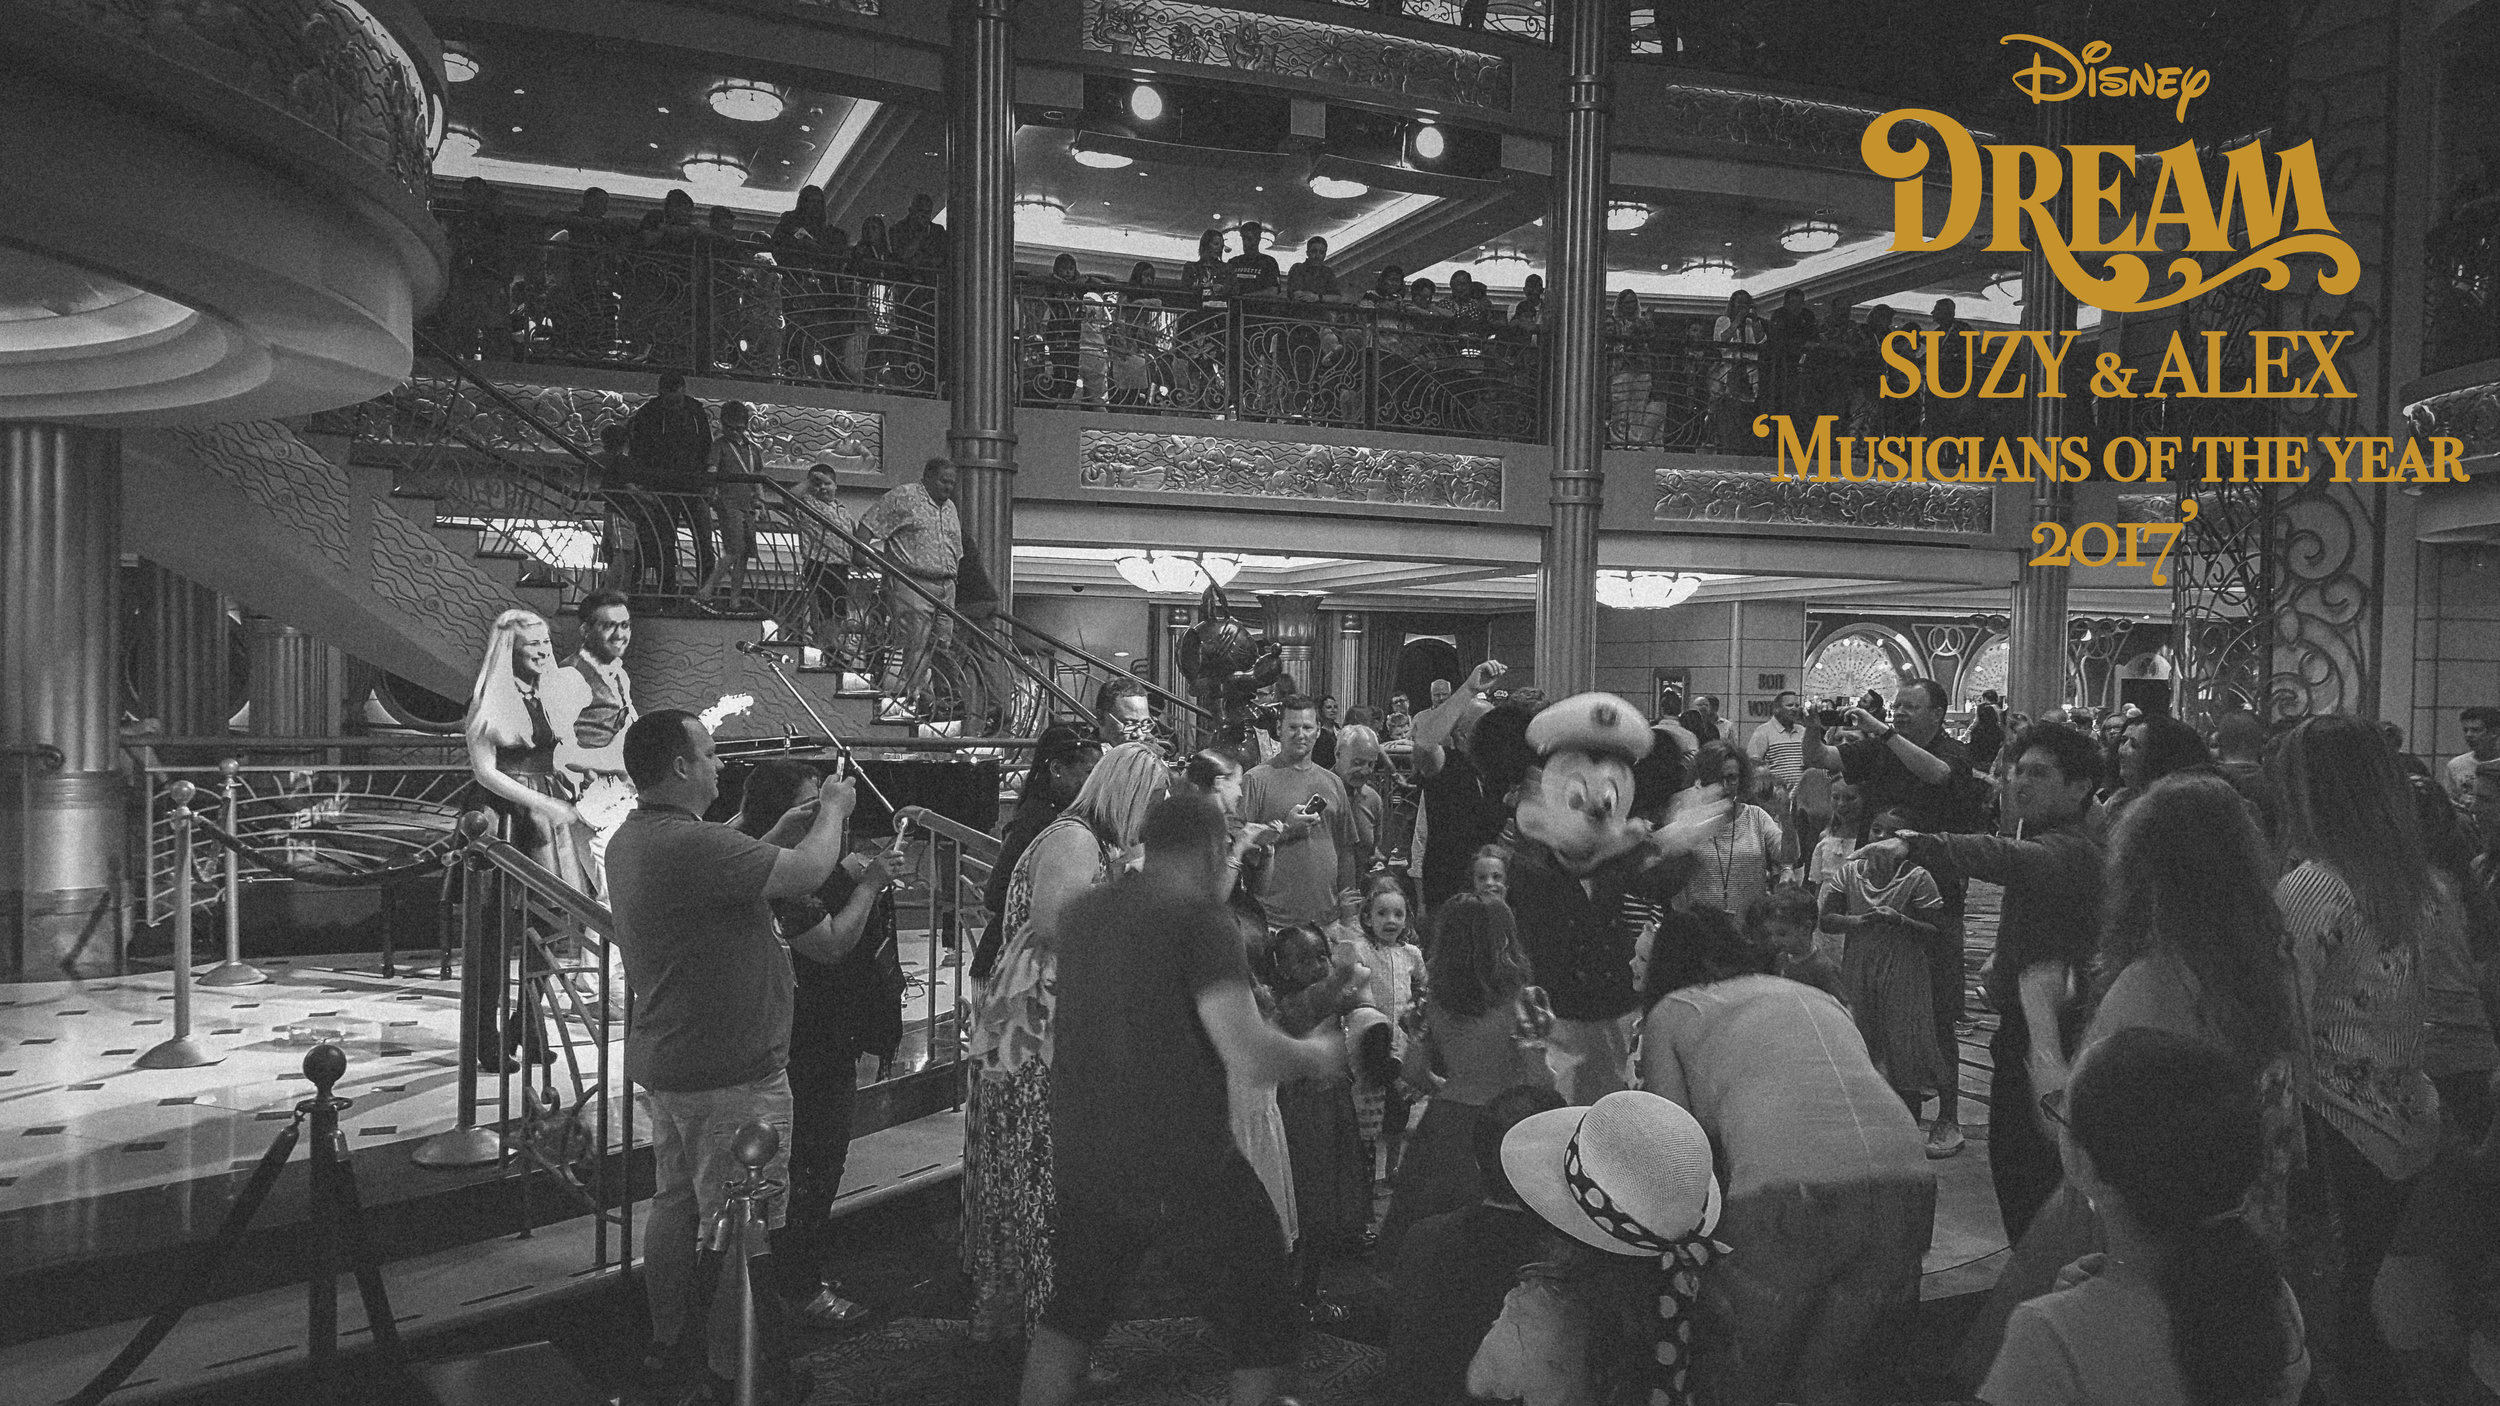 In 2017 we won the Disney Dream's 'musicians of the year' title, as voted for by the crew of the ship. In the photo above we are performing in the lobby atrium for a family dance party.